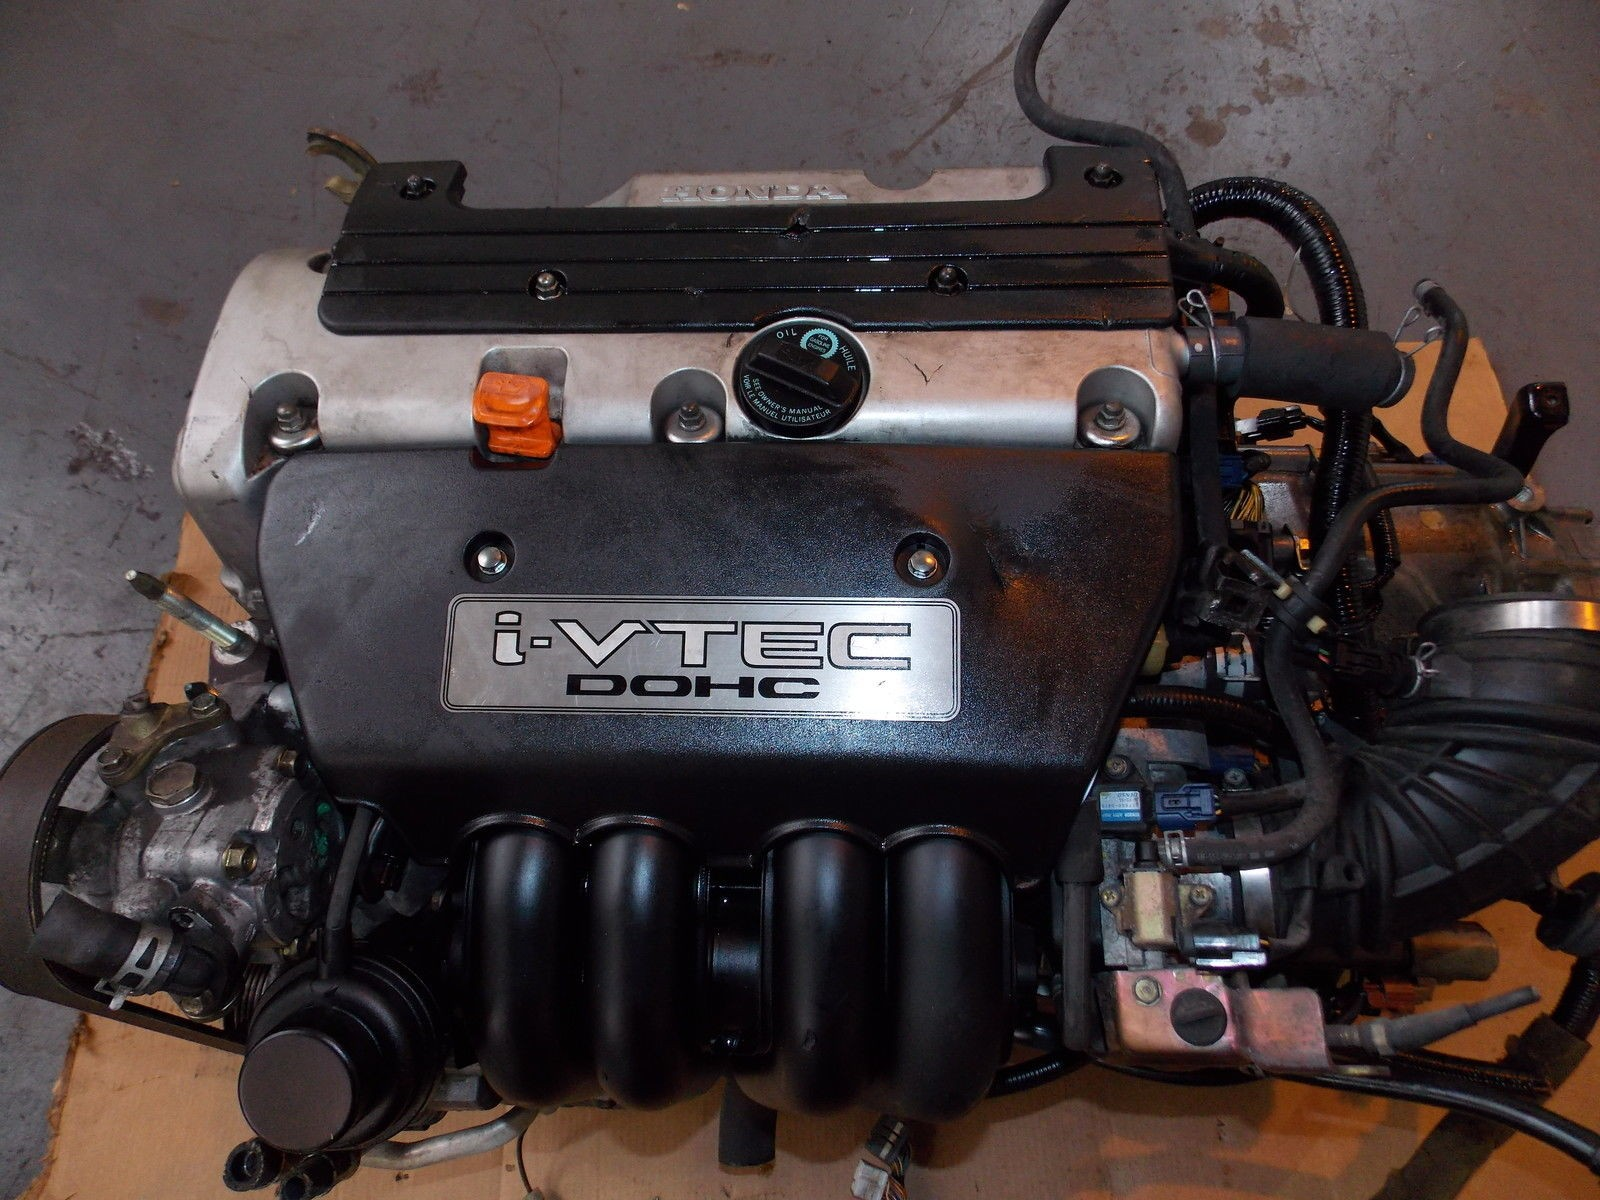 Honda Vtec Engine Diagram K20 Swap to A 95 Civic Hatch Honda Tech Honda forum Discussion Of Honda Vtec Engine Diagram